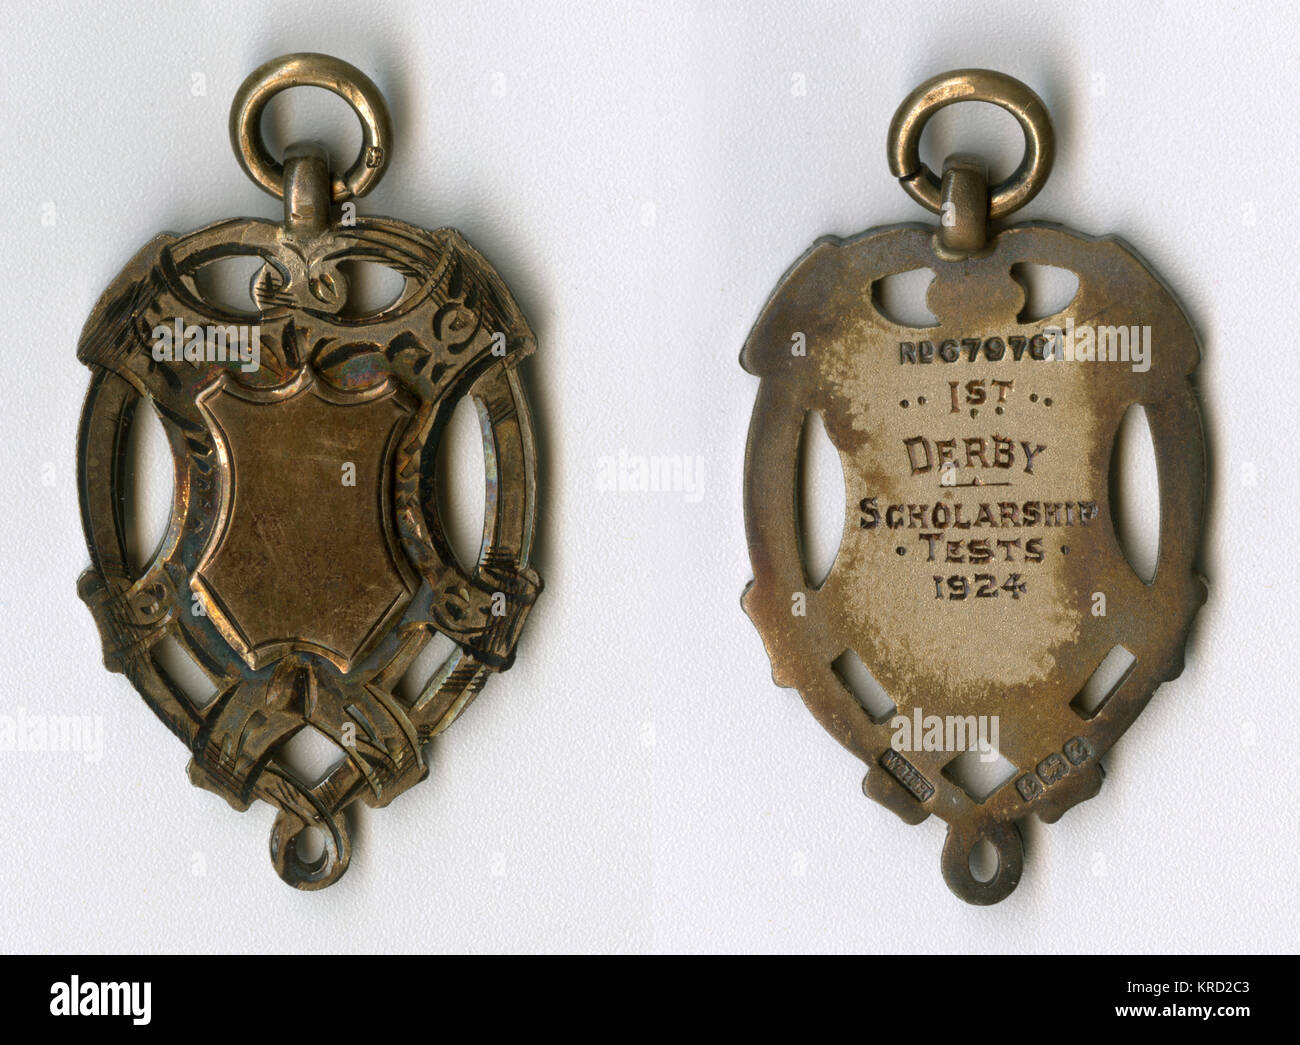 Medal for a 1st Prize in the Derby Scholarship Tests.      Date: 1924 - Stock Image